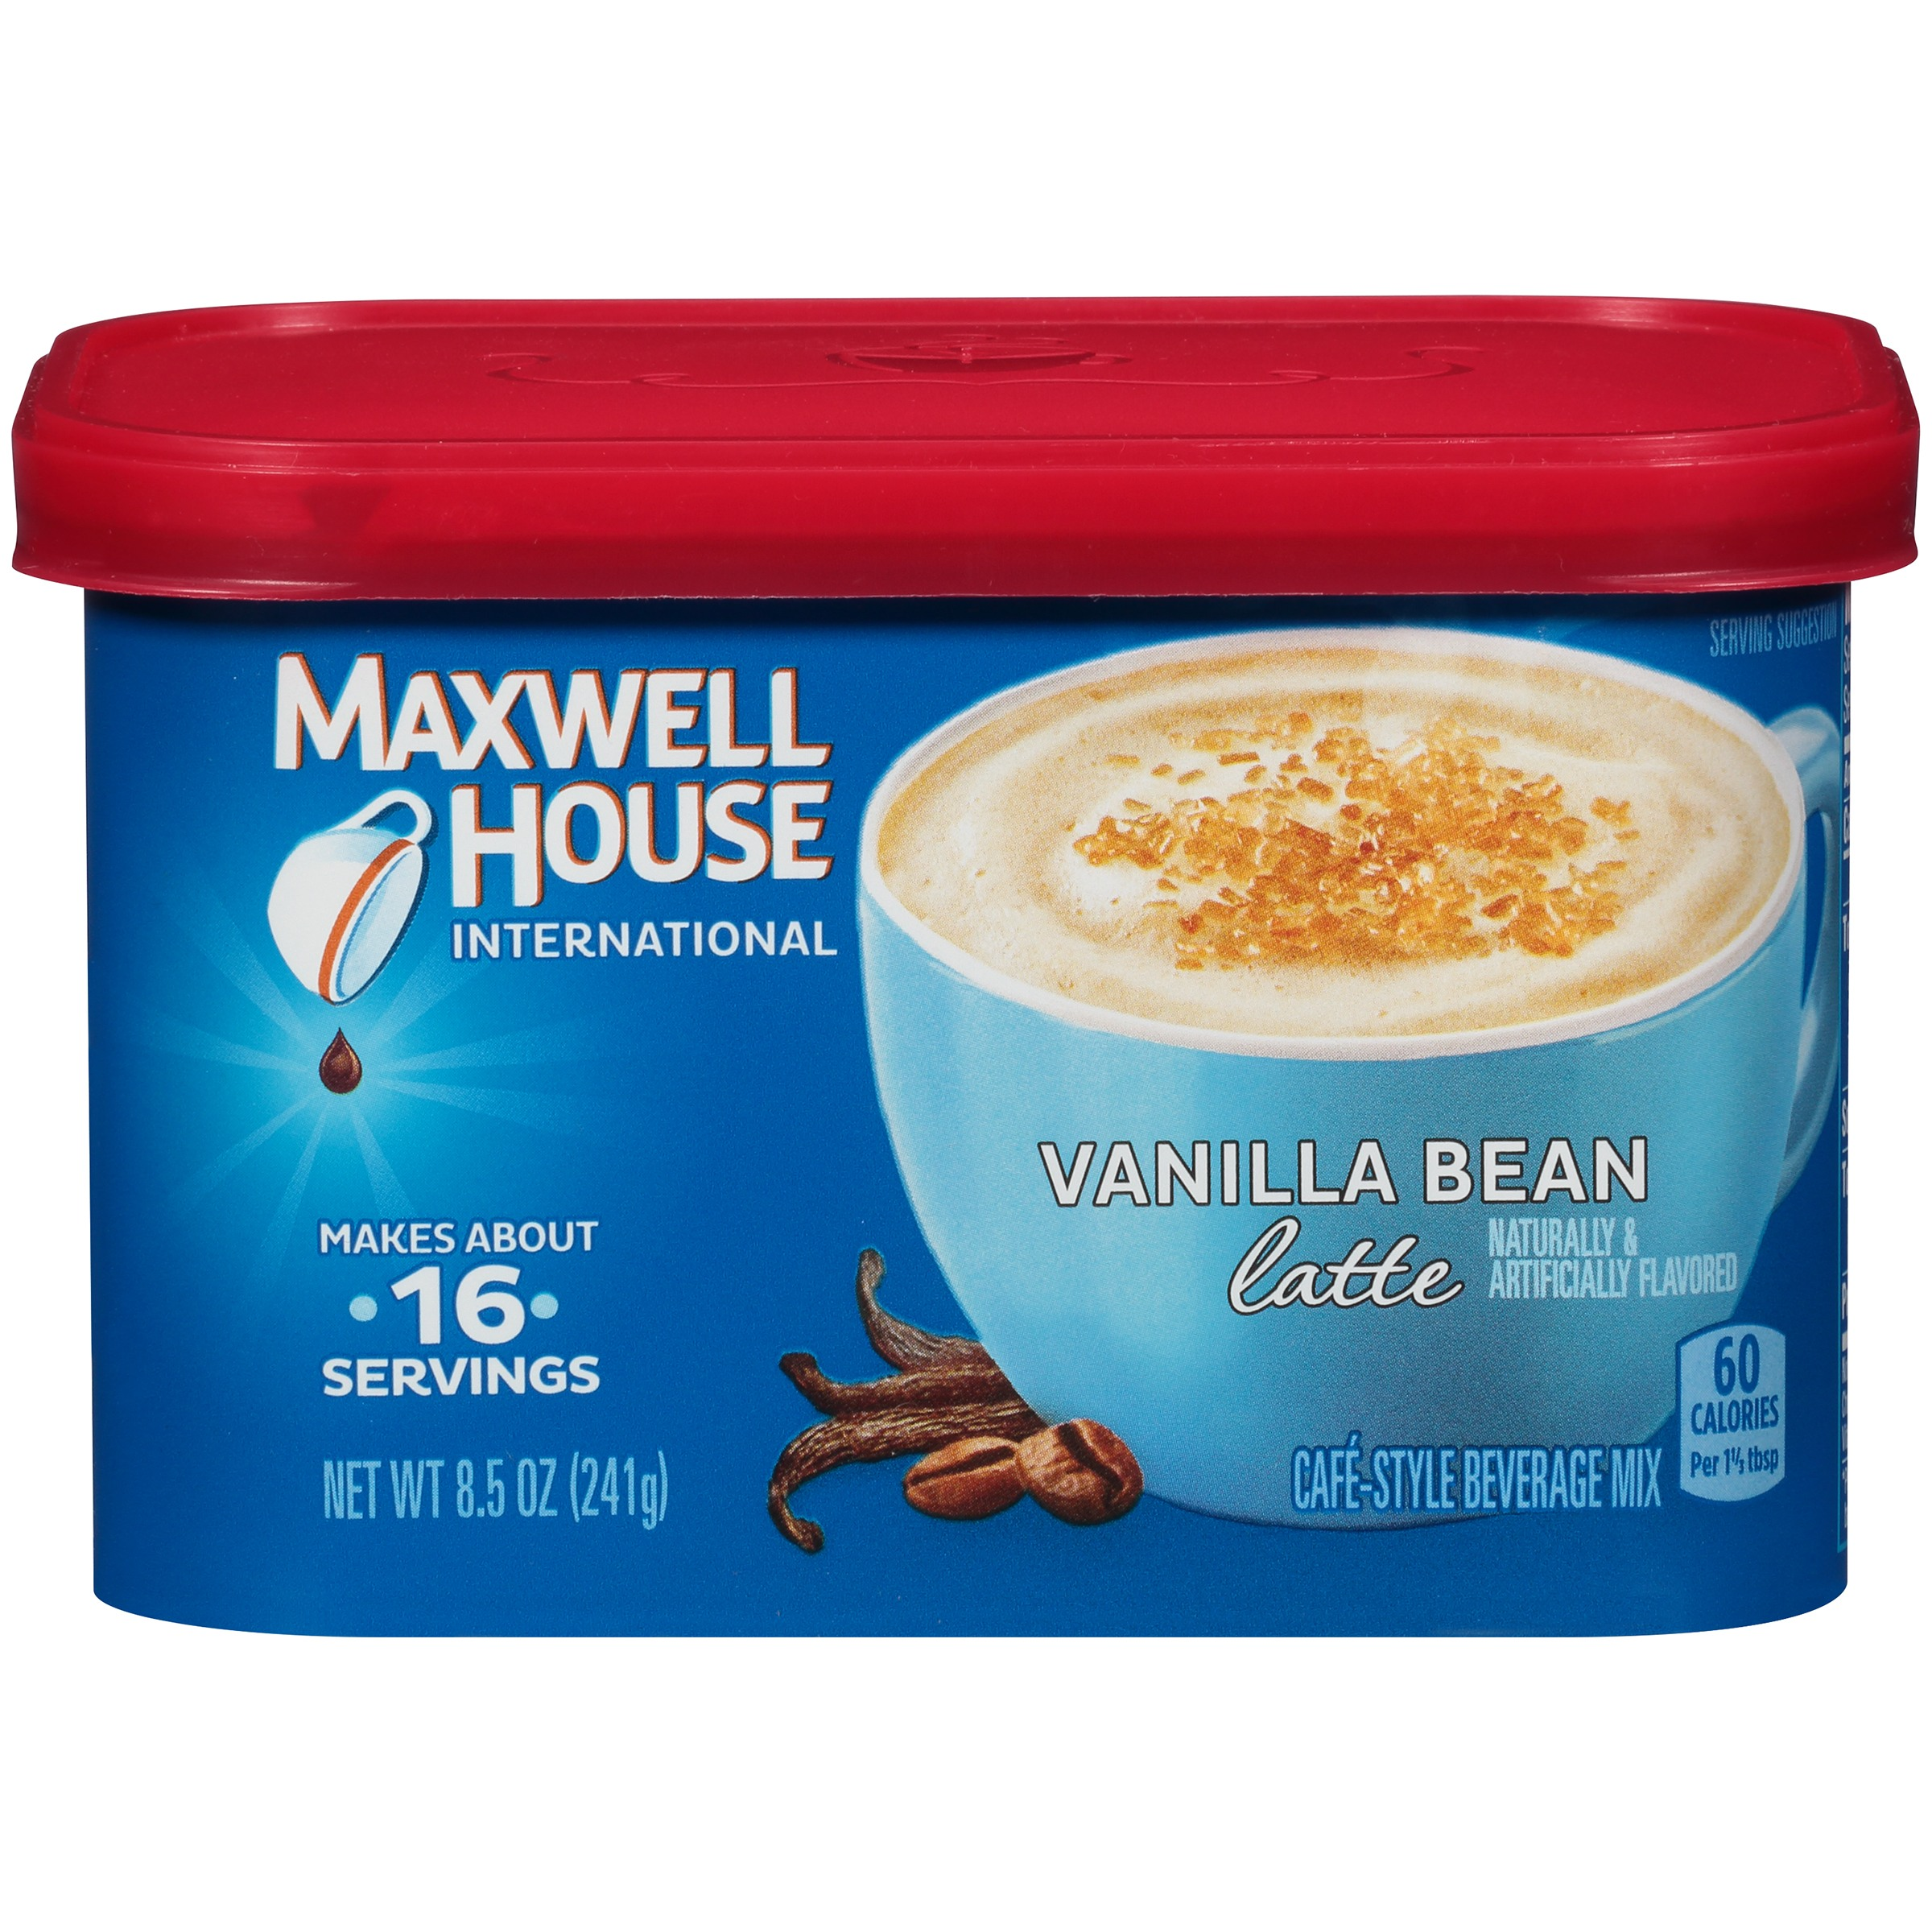 Maxwell House International Vanilla Bean Latte Café-Style Beverage Mix 8.5 oz. Tub